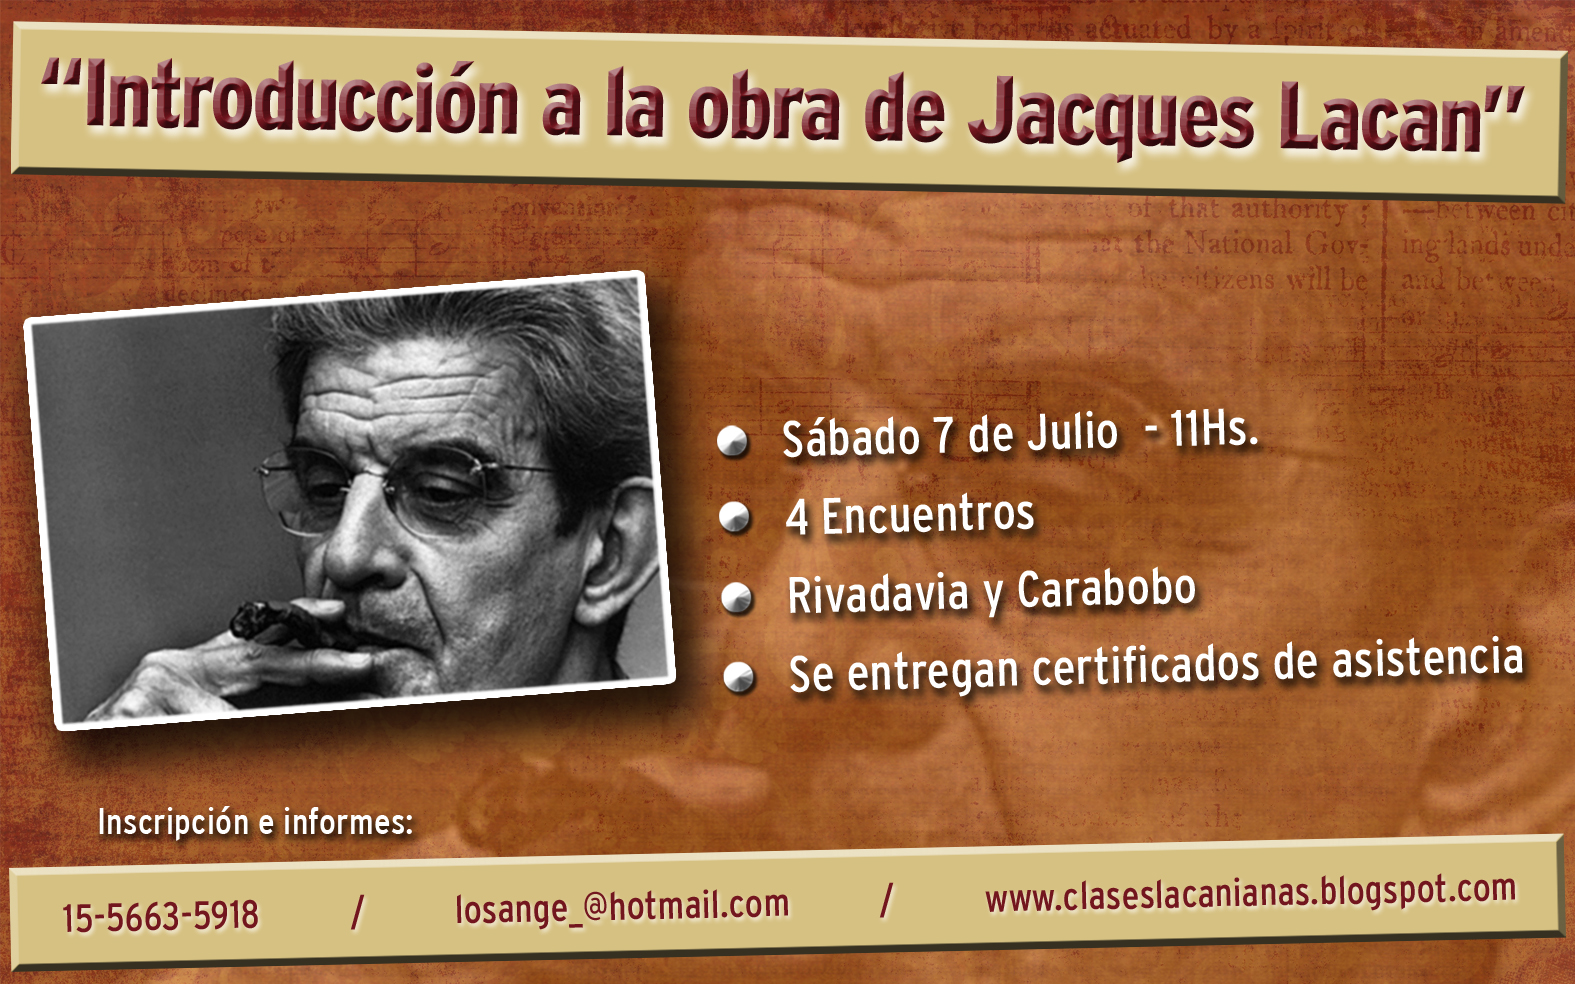 jacques lacan original essays Jacques lacan, who is often  jacques lacan's reinterpretation of poesy an essay on criticism an essay on man an essay on original genius angela carter.